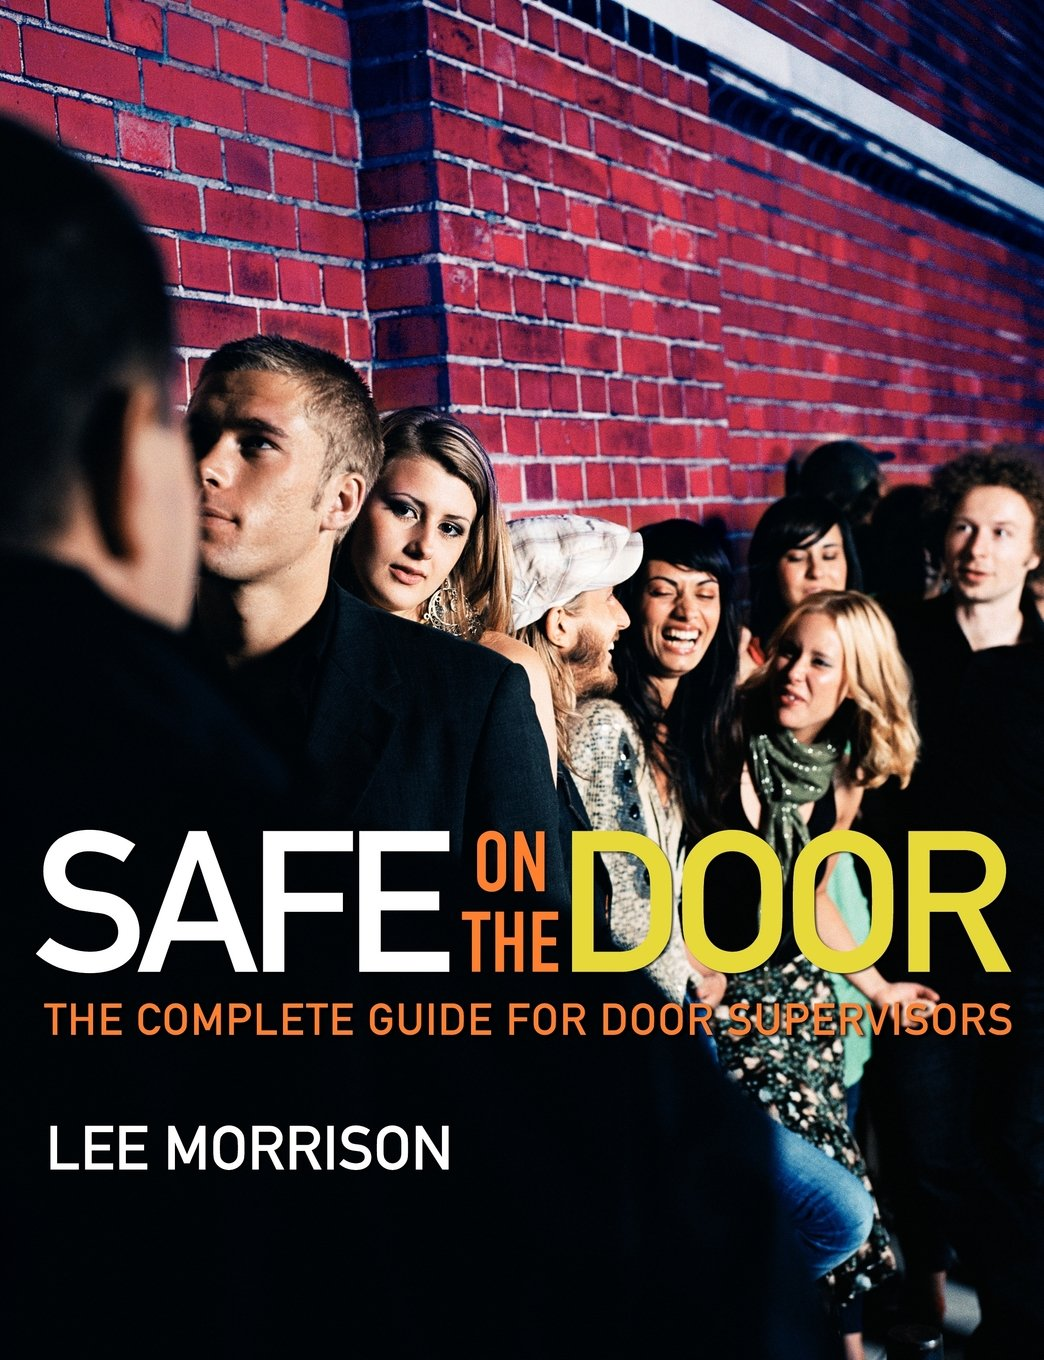 Safe On The Door  The Complete Guide For Door Supervisors